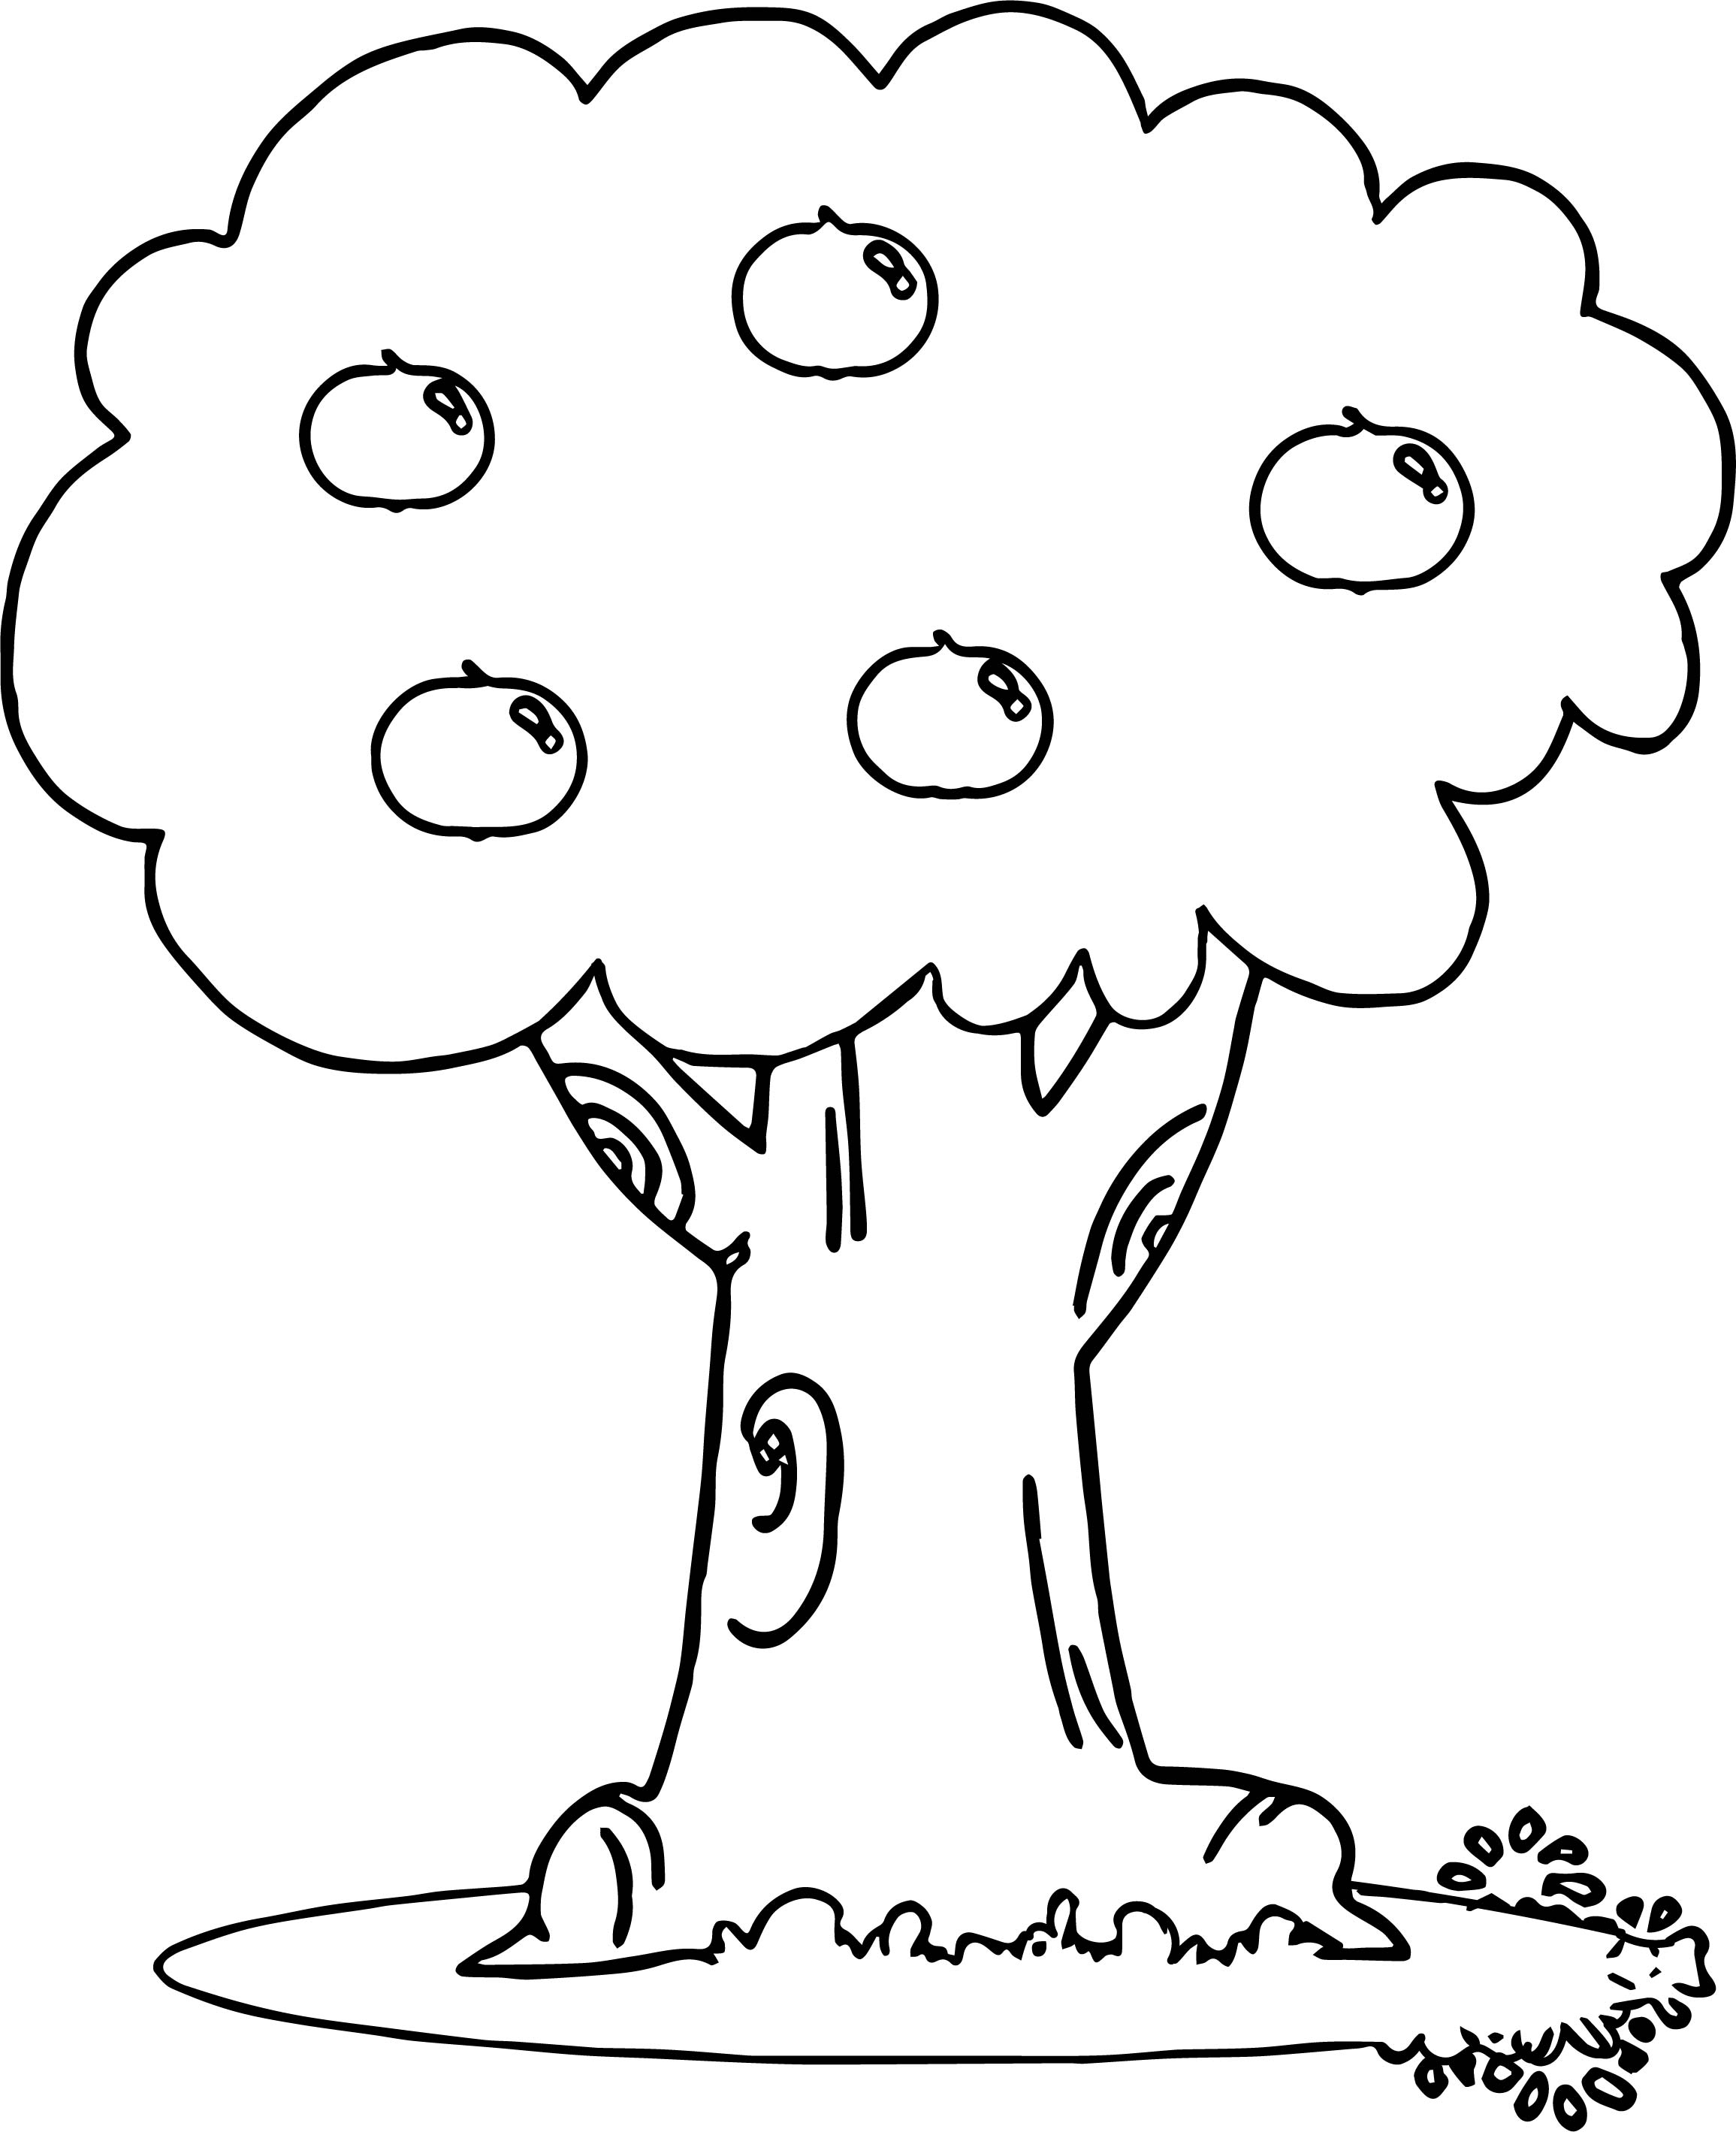 Apple Tree Coloring Page Medium Size Of Coloring Pages